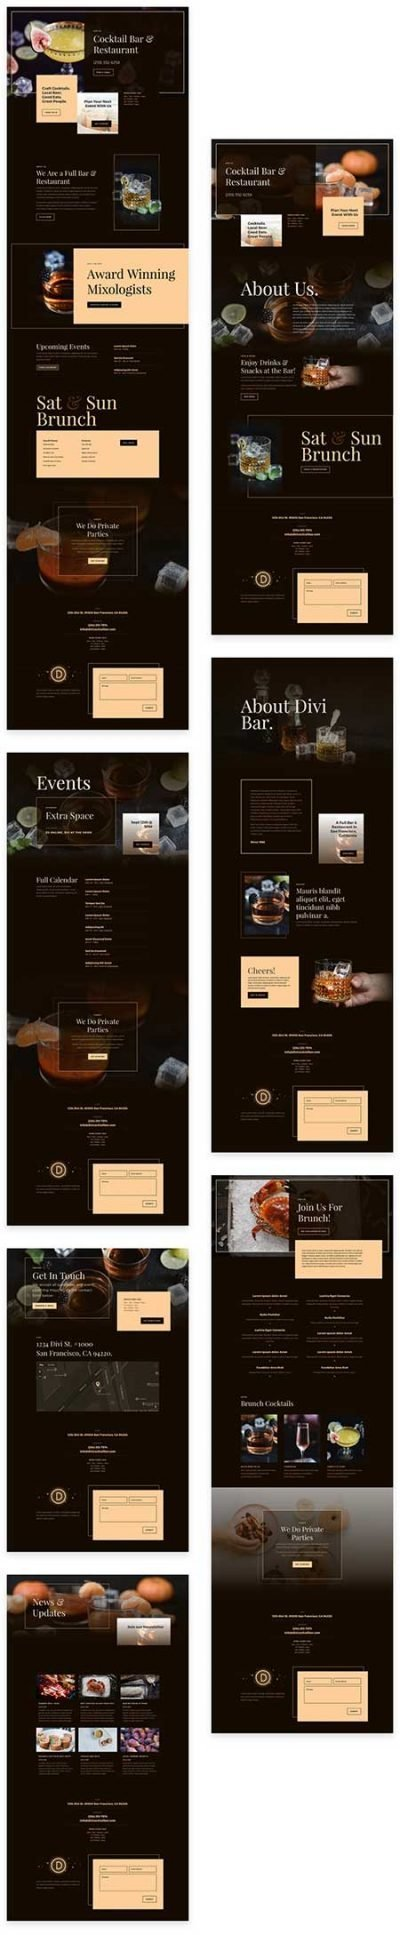 Divi cocktail bar template